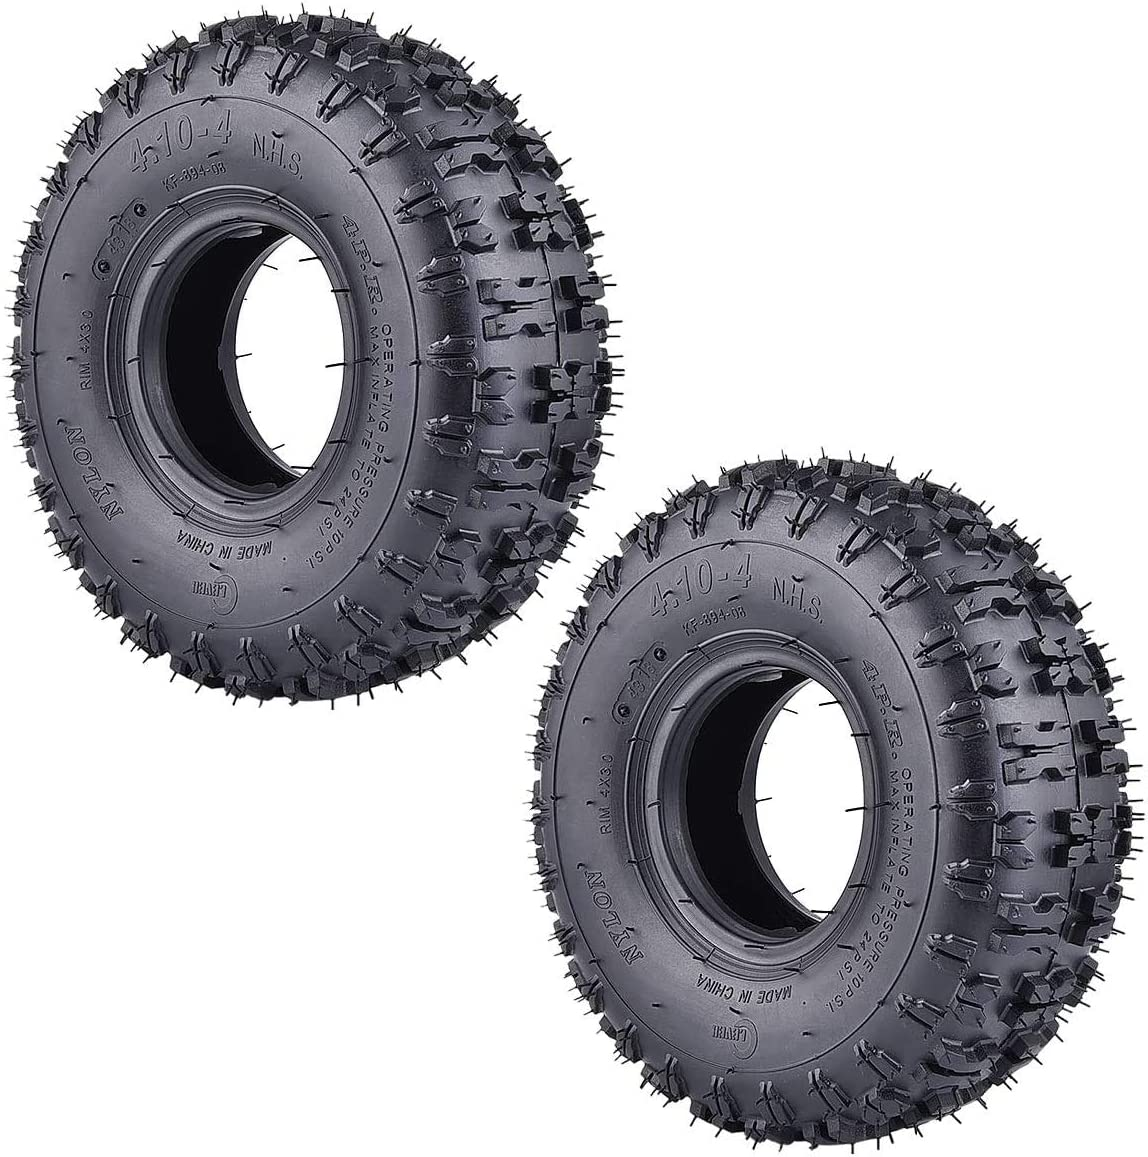 Yootree 2 Pack of 4.10-4 410-4 Roto Cheap mail order Tulsa Mall shopping for Garden 4.10 3.50-4 Tires